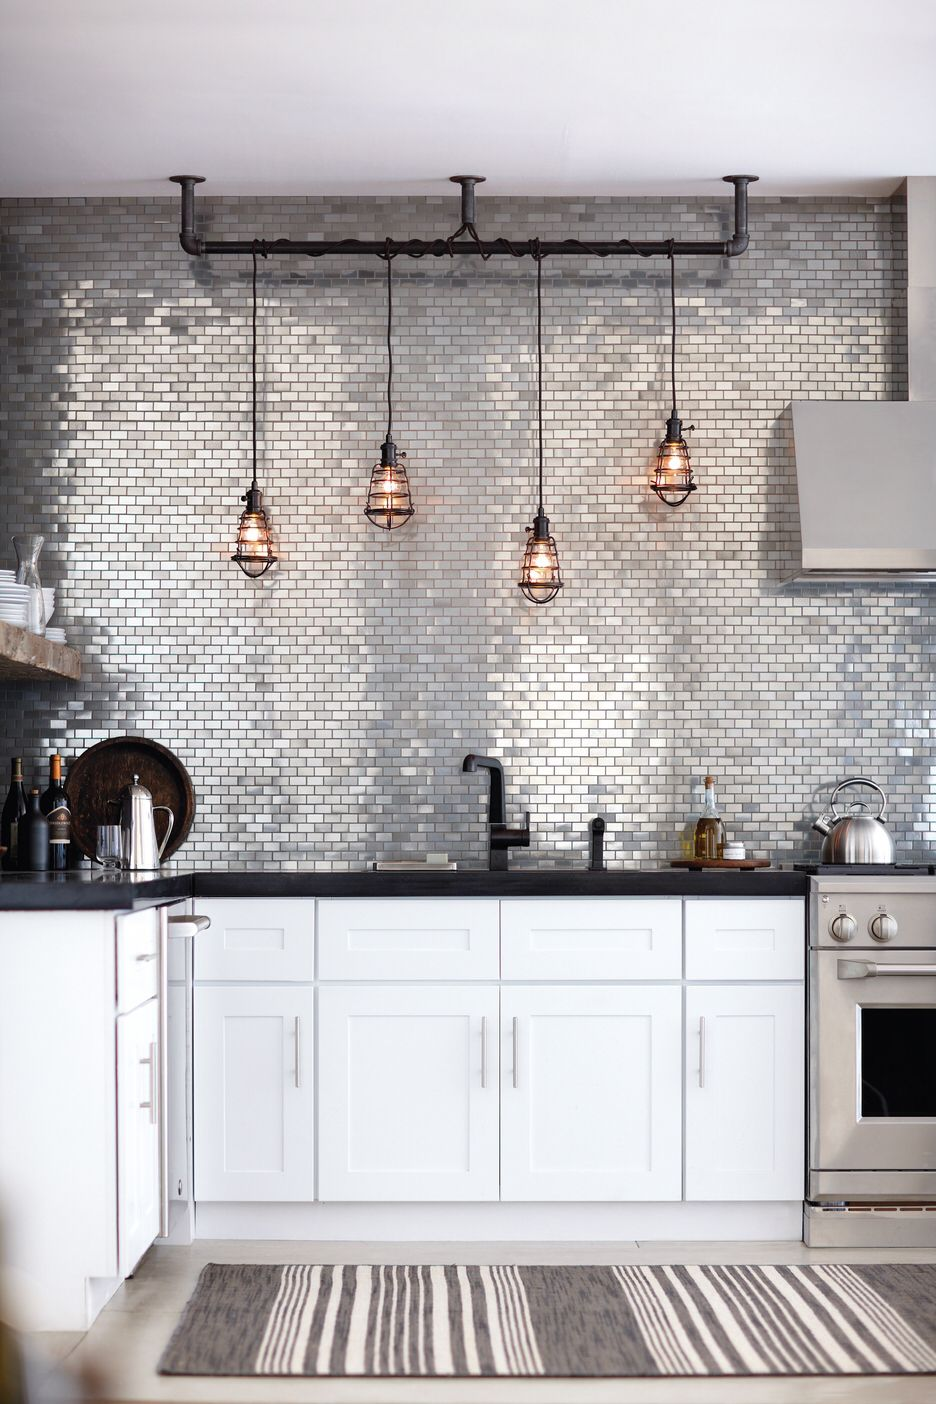 Industrial Glam With Metallic Tiles Via Designmeetstyle Tumblr